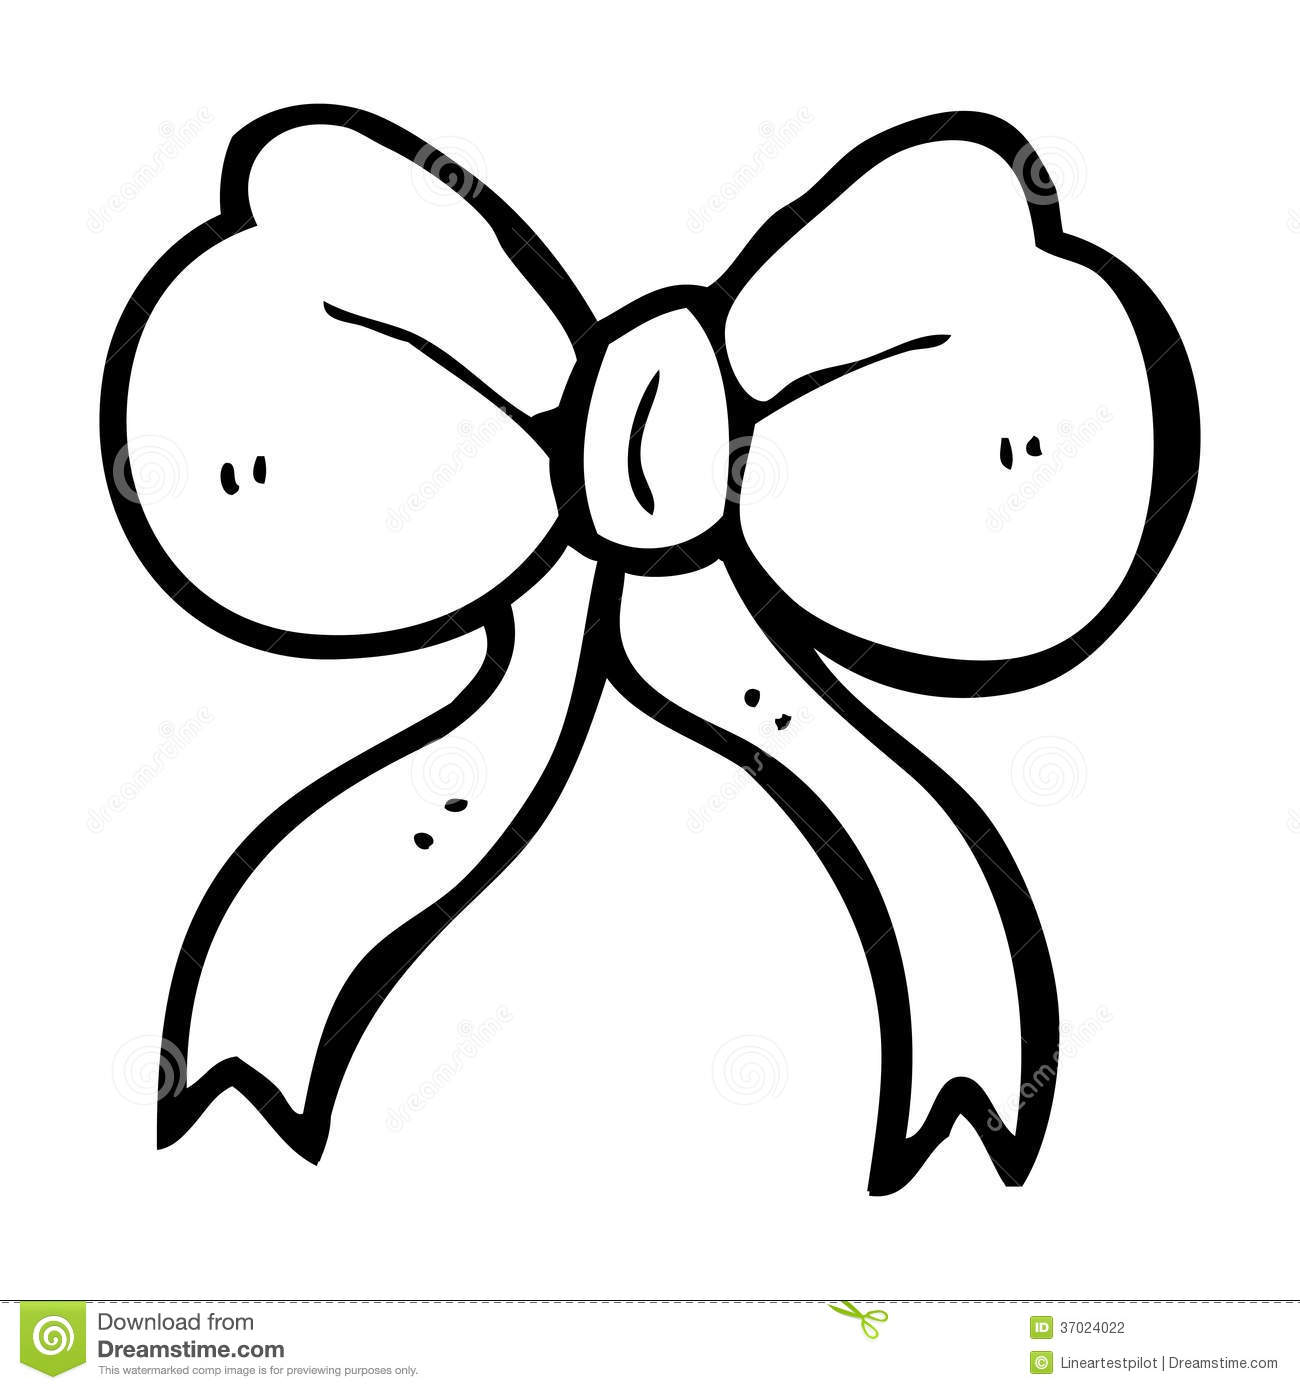 cartoon bow tie stock illustration image of illustration